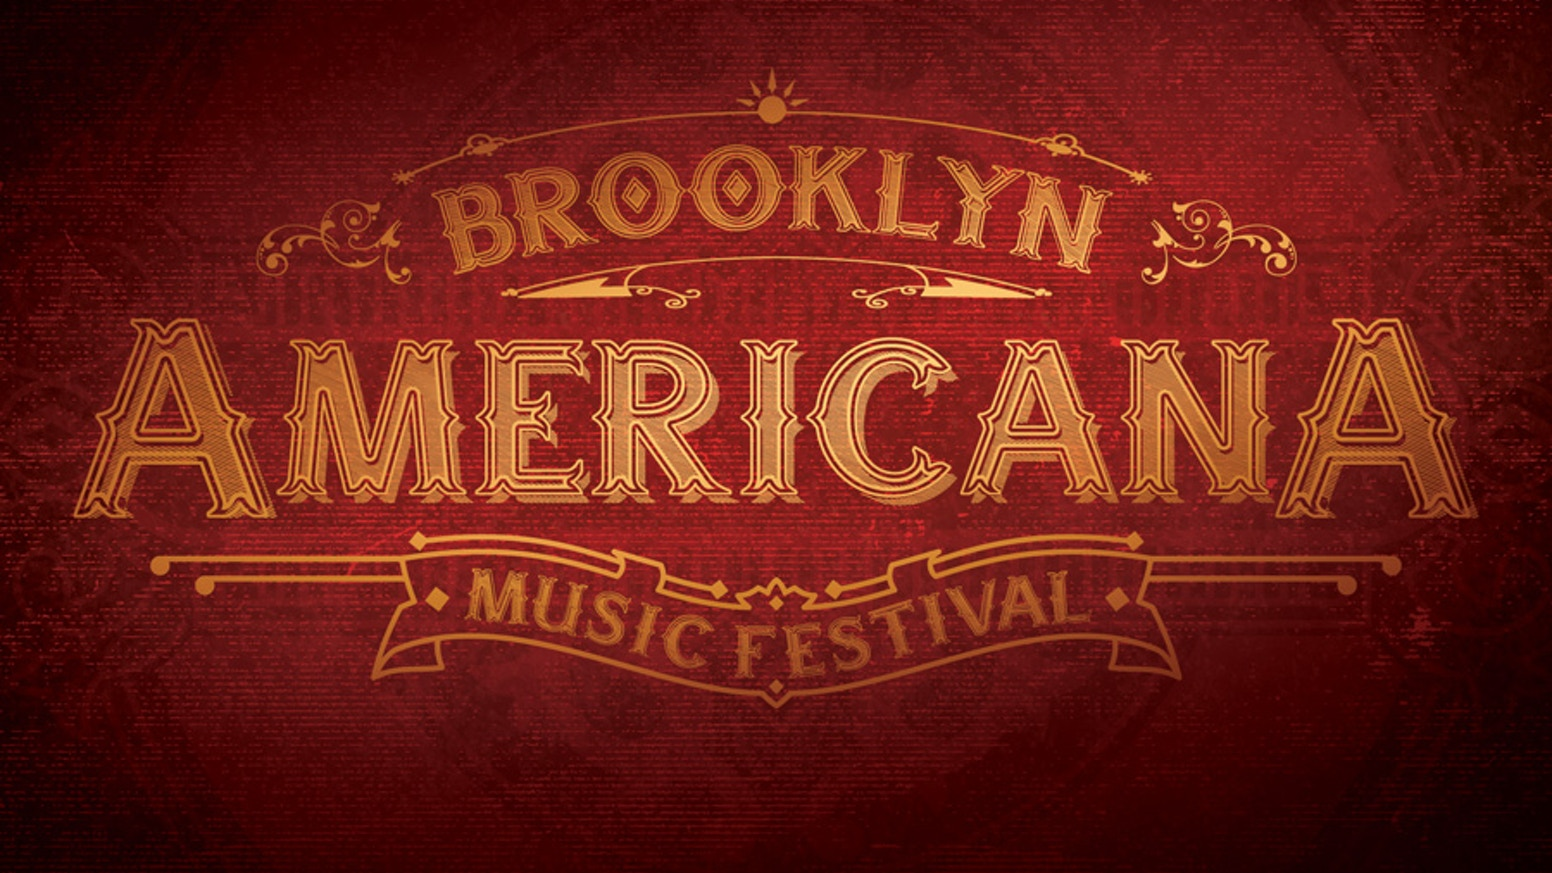 Americana Music down by the Brooklyn waterfront at Superfine, 68 Jay and the Archway in DUMBO; Bklyn Bridge Park, and Jalopy Theatre!